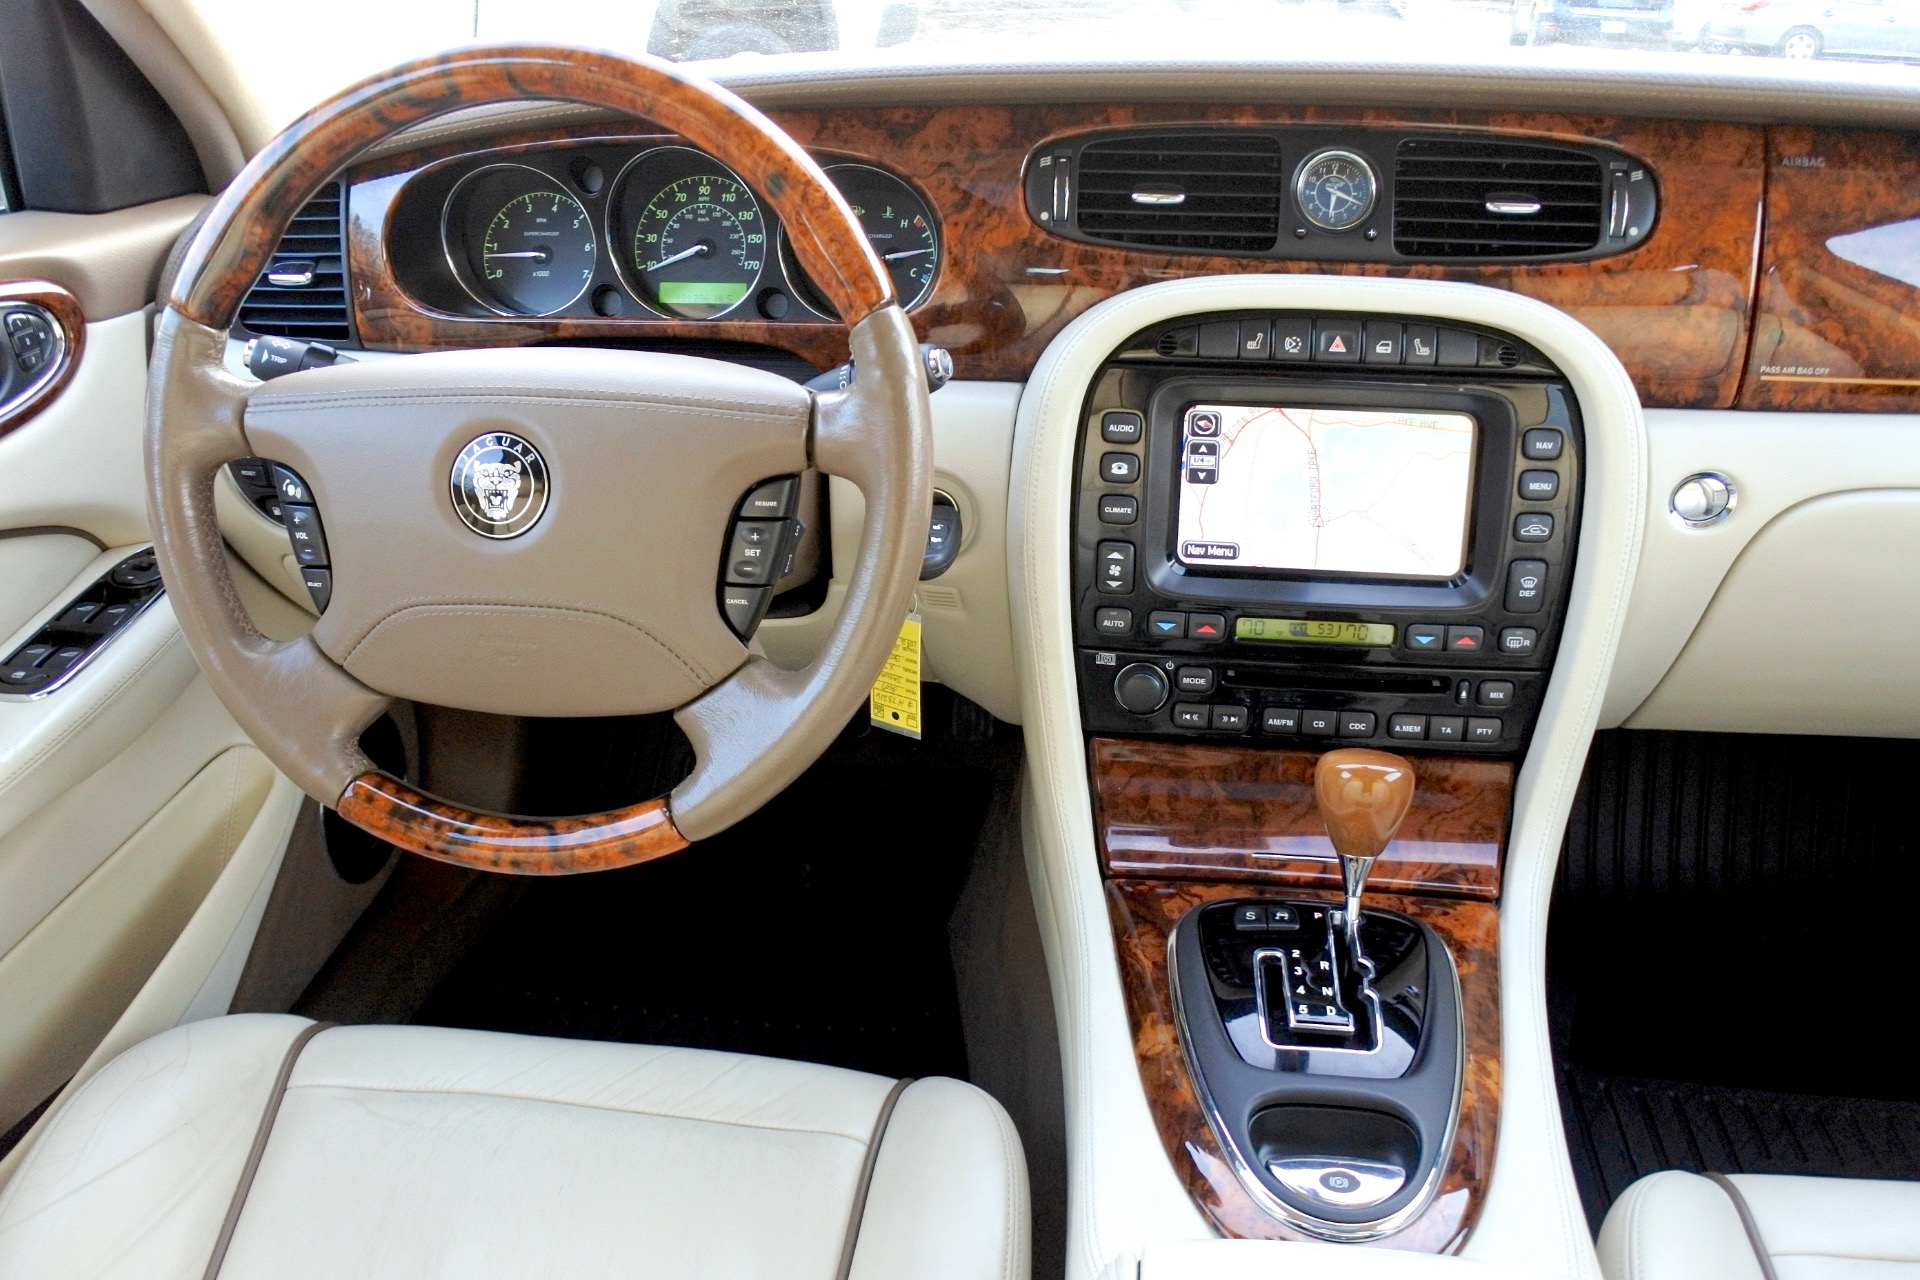 Used 2007 Jaguar Xj l Super V8 Used 2007 Jaguar Xj l Super V8 for sale  at Metro West Motorcars LLC in Shrewsbury MA 10